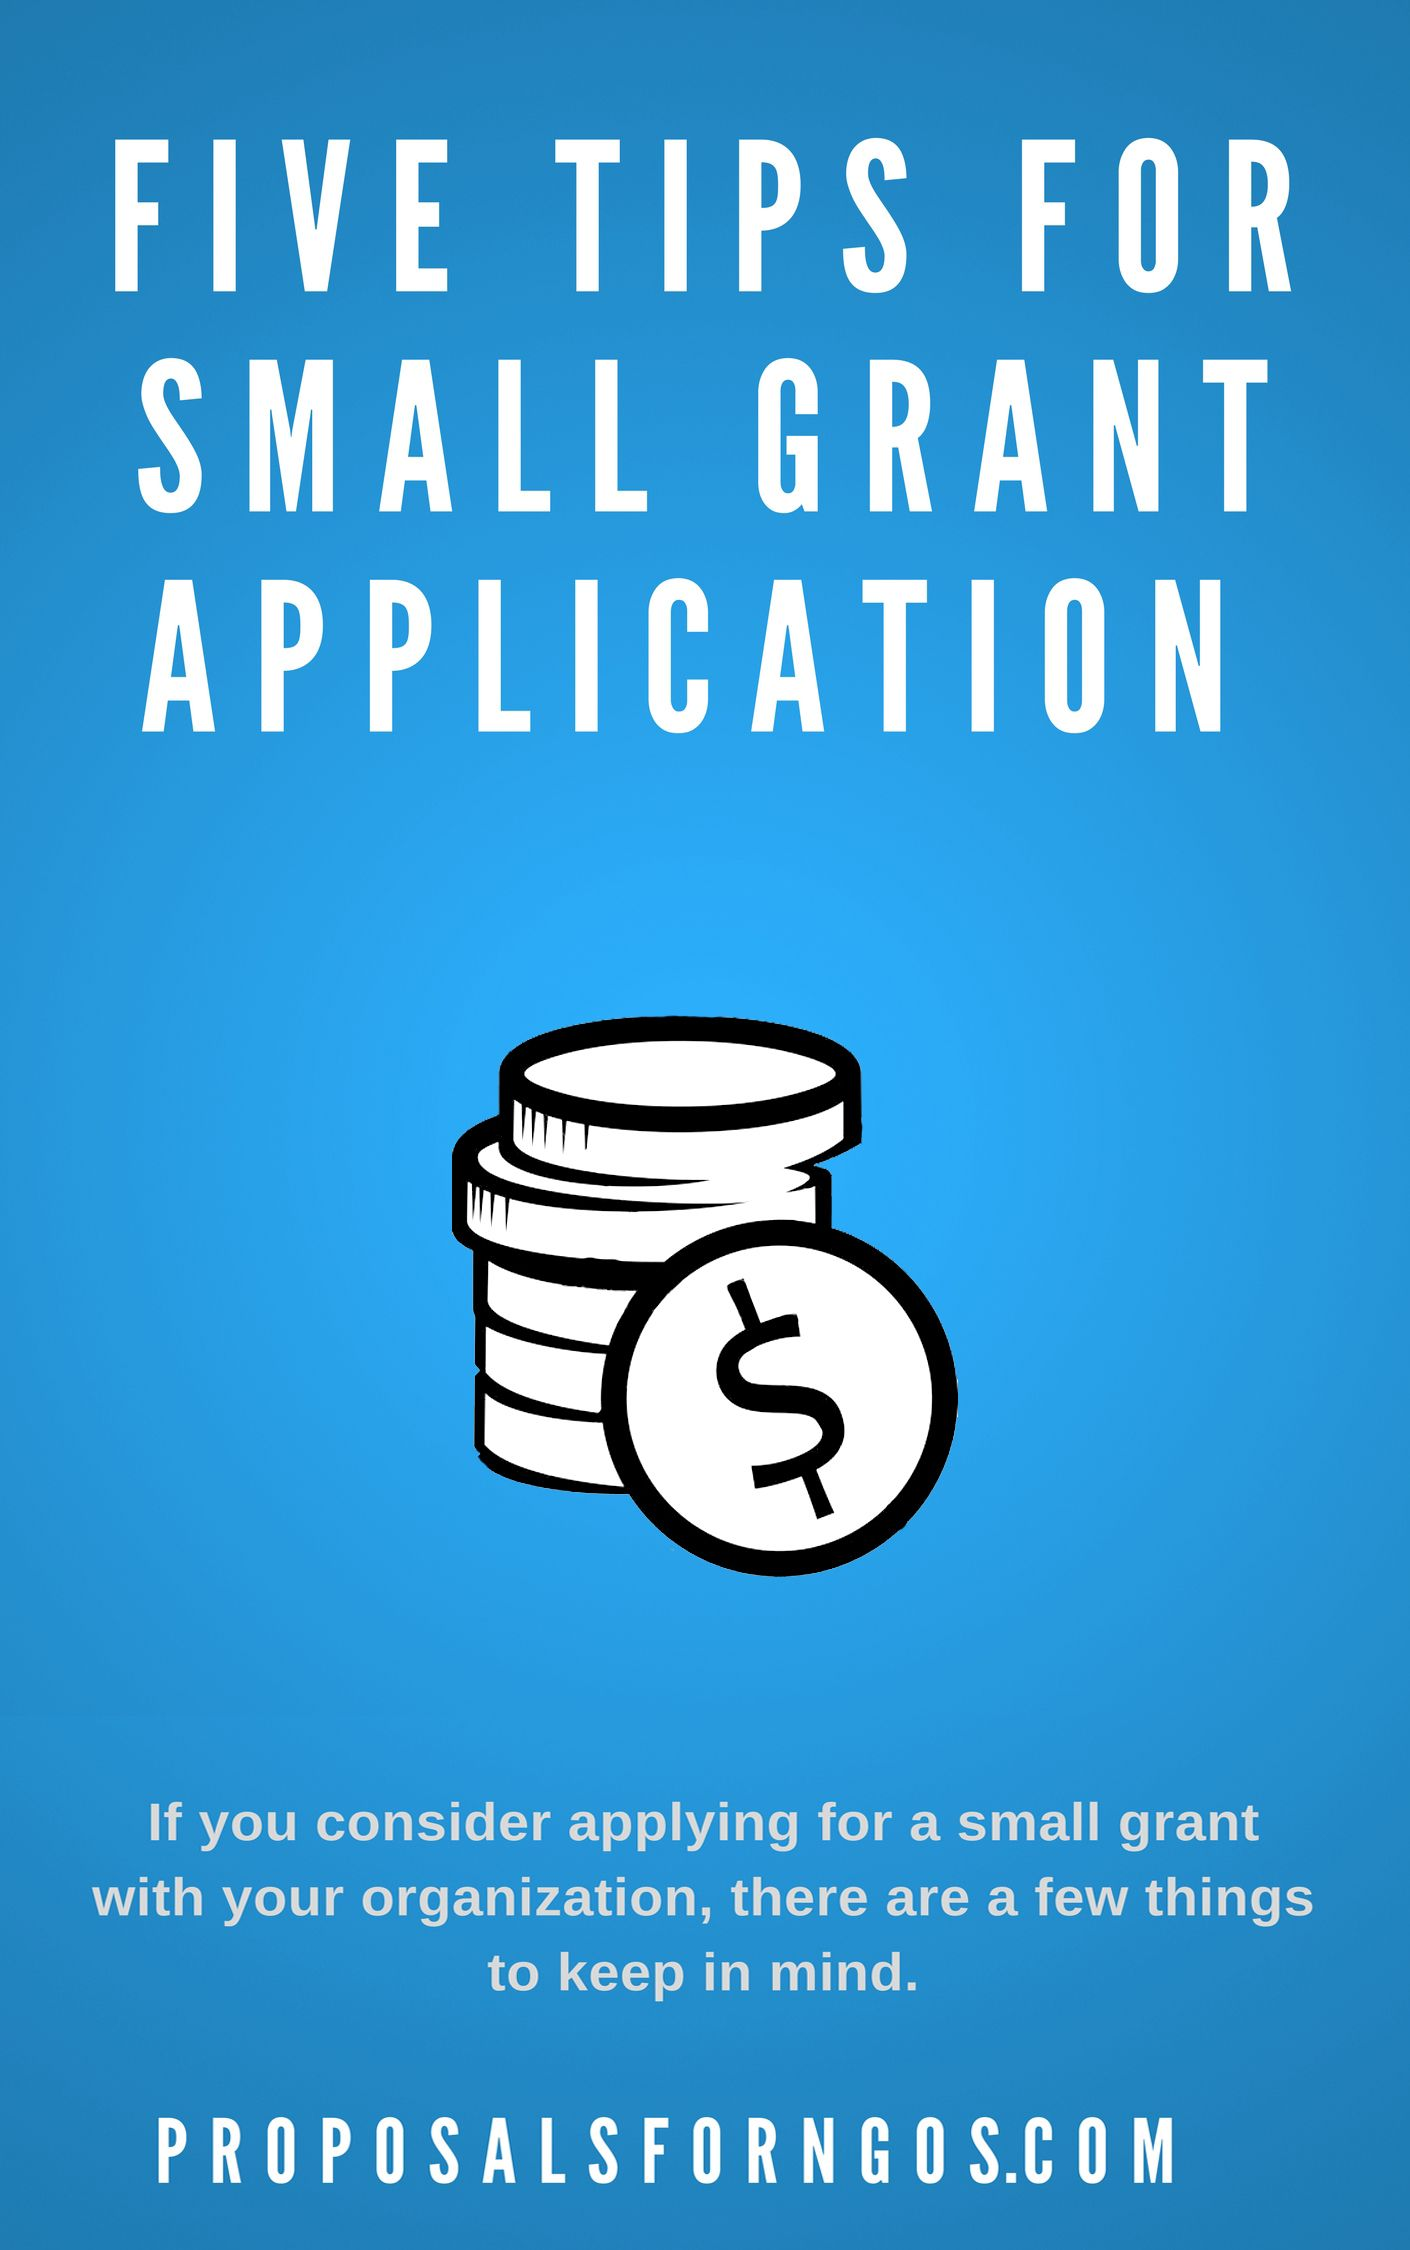 5 Tips For Small Grant Applications Proposal For Ngos Grant Application Grant Writing Proposal Writing